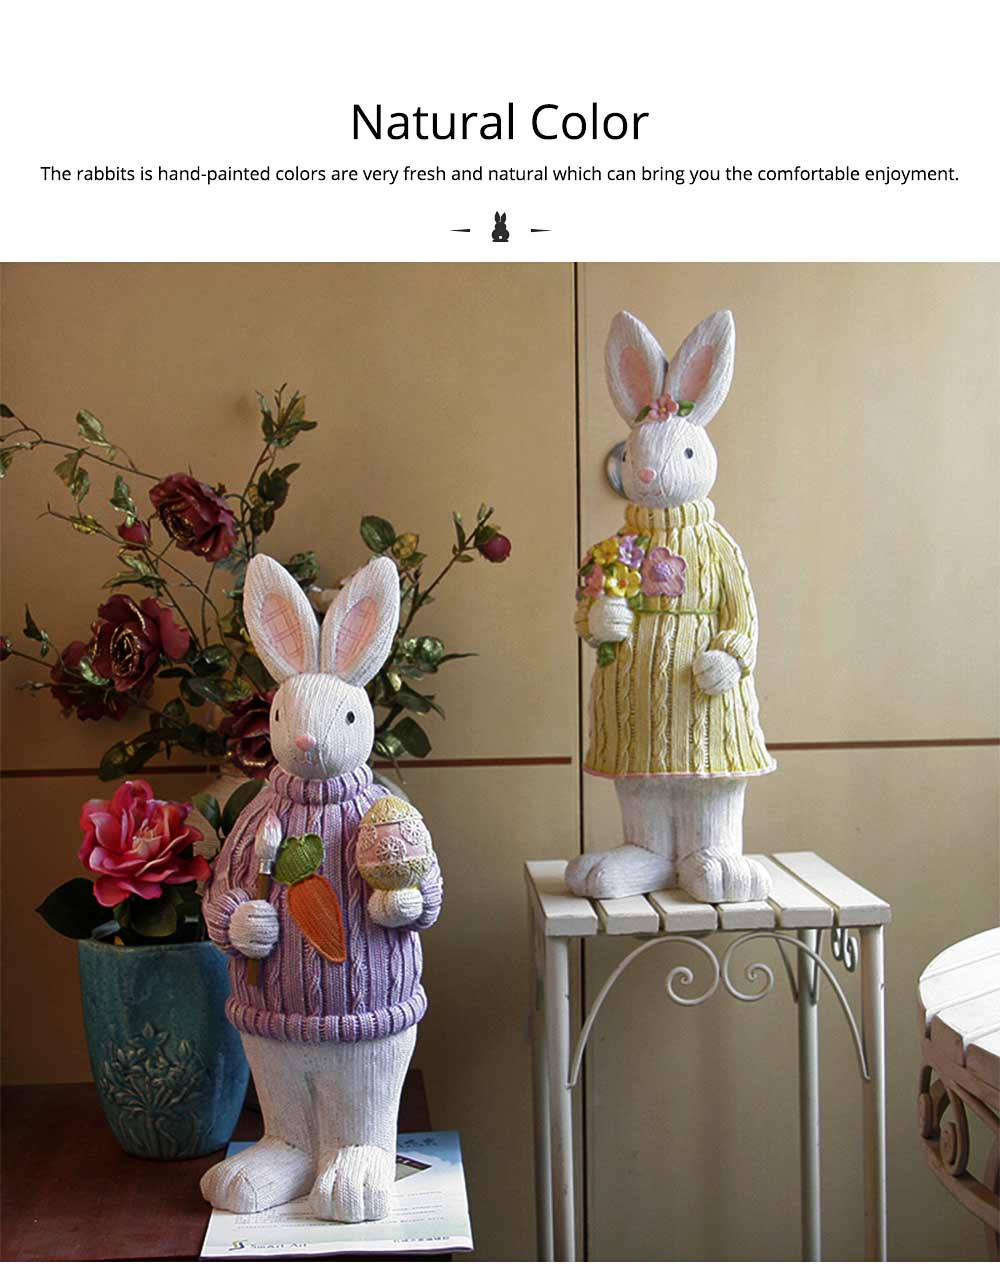 Resin Easter Hand-Painted Bunny with Seating Post for Any Room, Shelf or Windowsill, Decorative Centerpiece 3